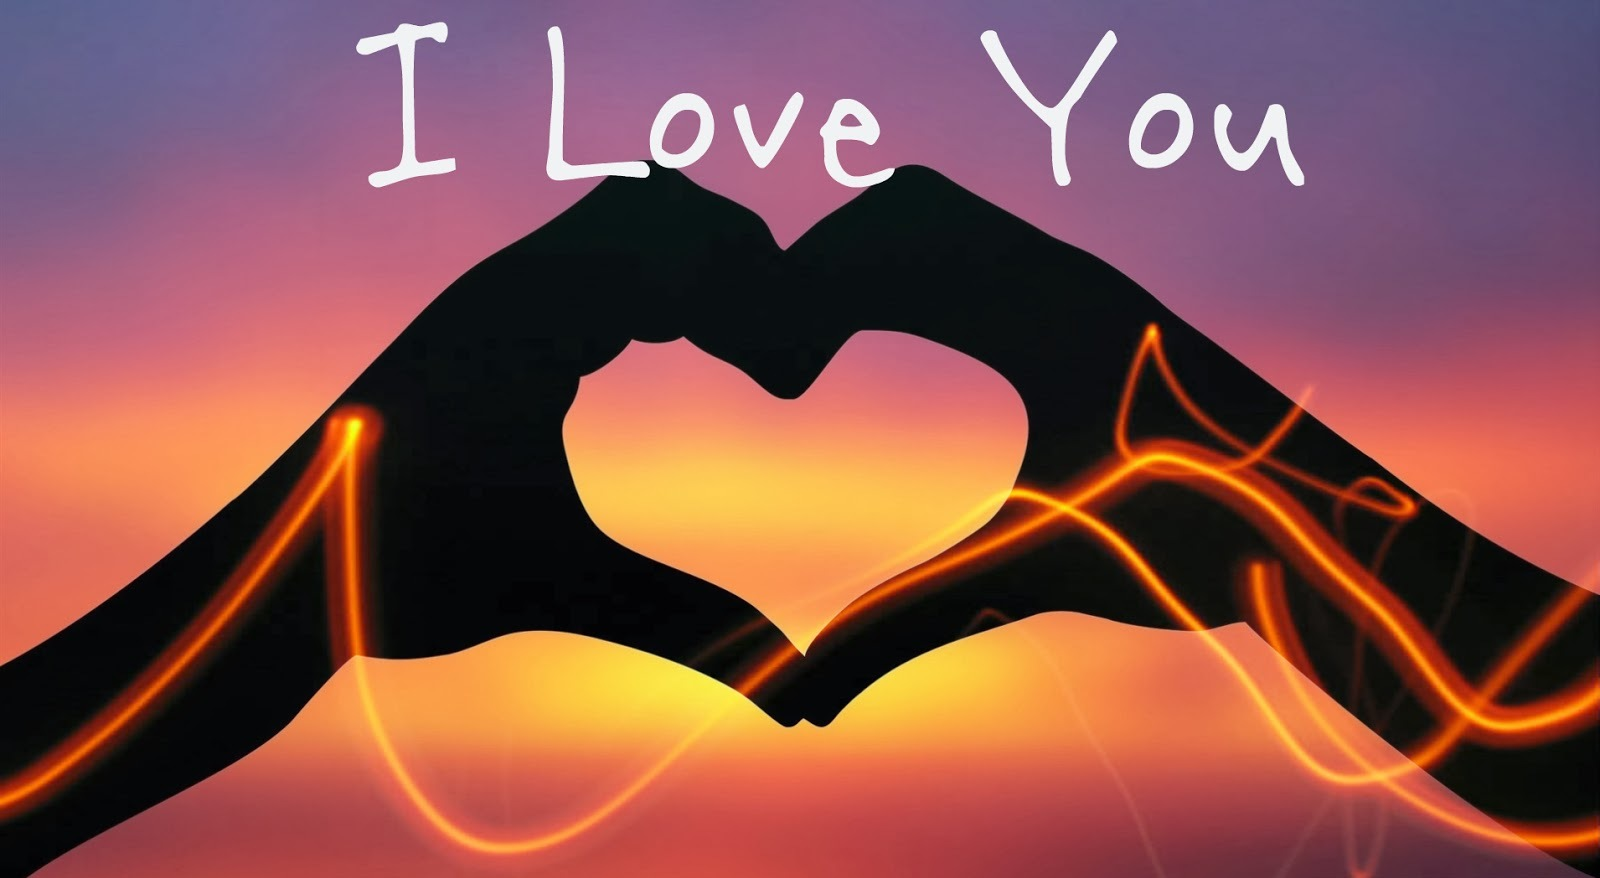 Love U Wallpapers Hd : I Love You Wallpapers, Pictures, Images